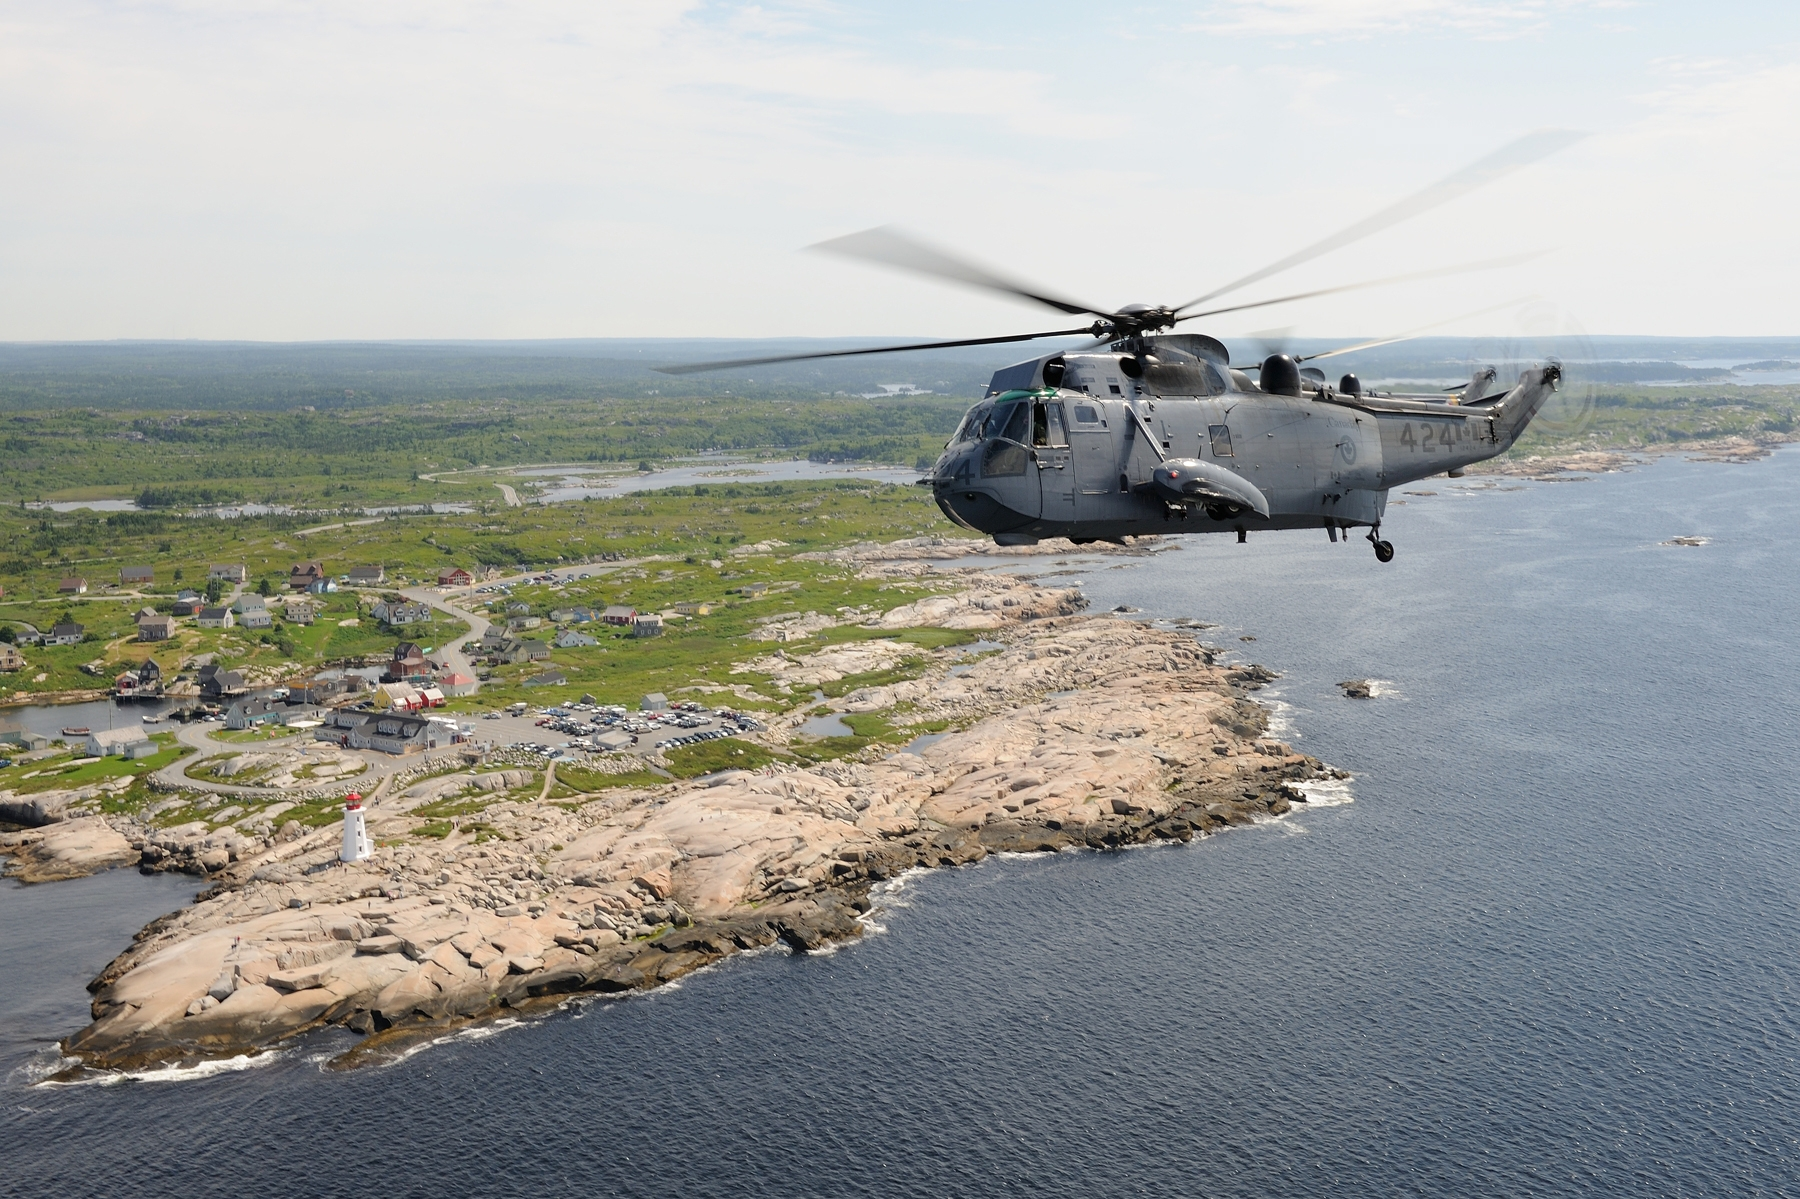 A CH-124 Sea King helicopter performs a flight to mark the 50th anniversary of the helicopter on July 9, 2013, in Shearwater, Nova Scotia. PHOTO: Corporal Nedia Coutinho, SW2013-0255-13